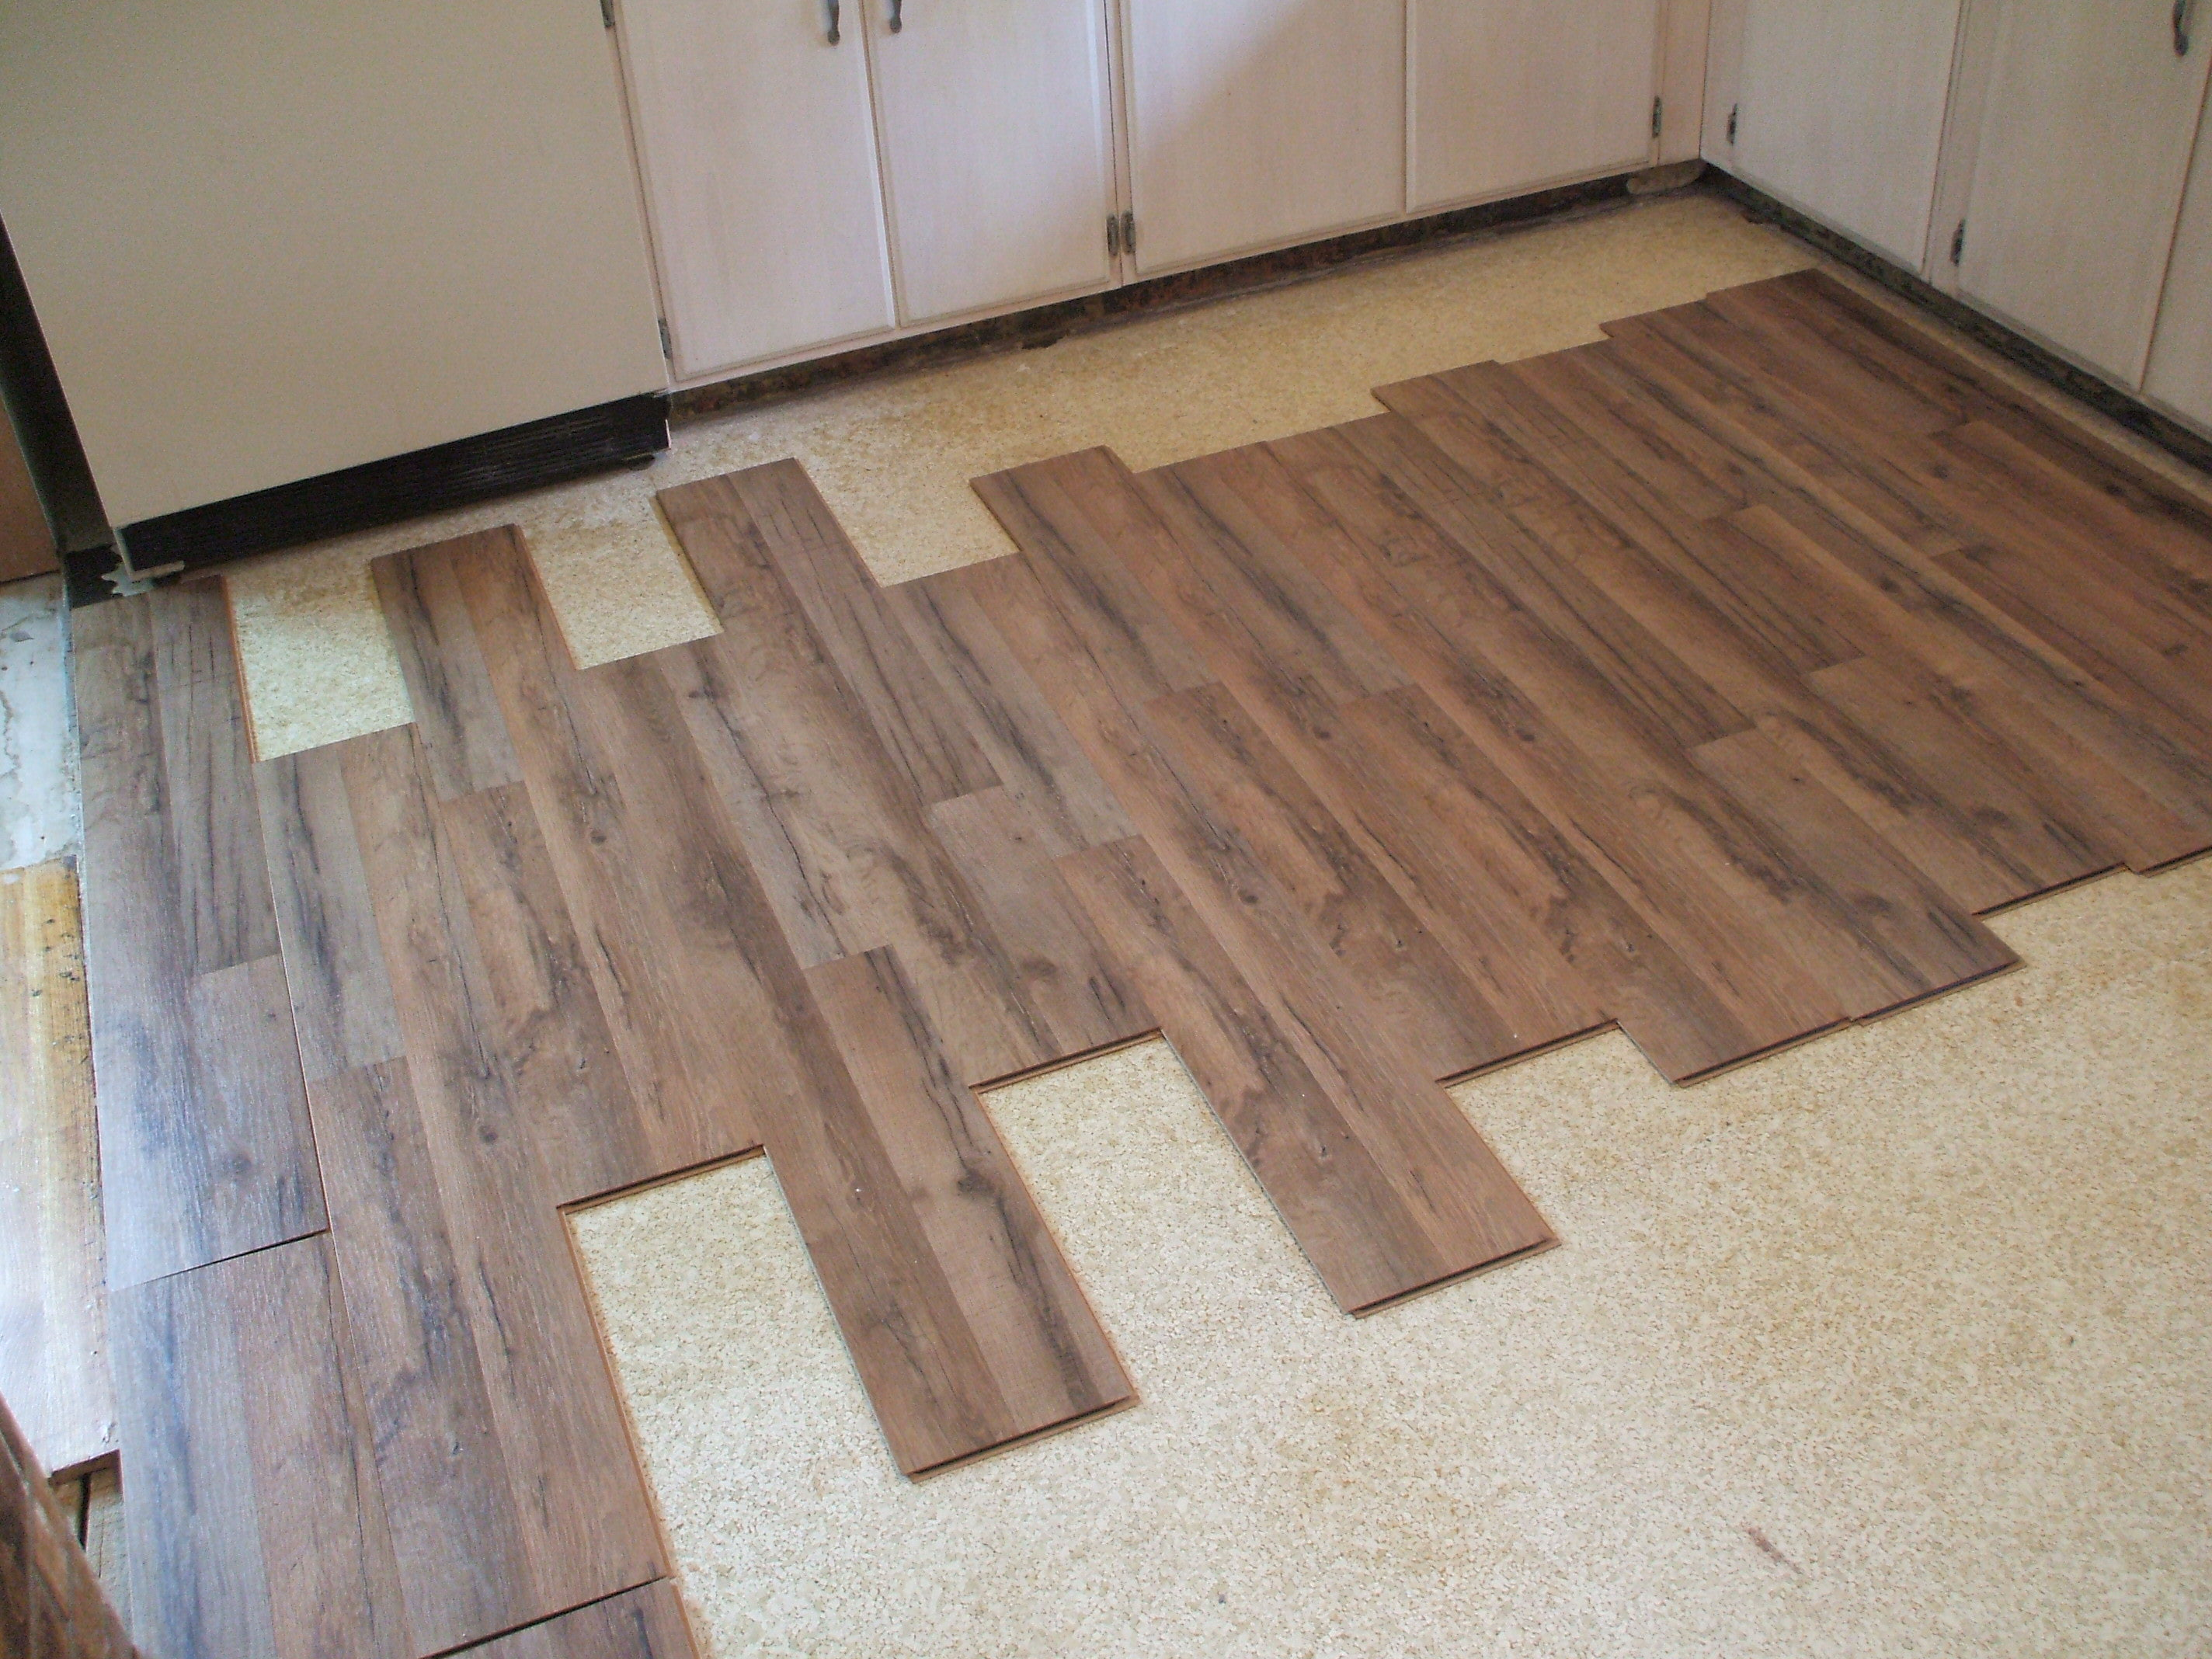 Kitchen Tile Laminate Flooring Flooring Options For Your Rental Home Which Is Best